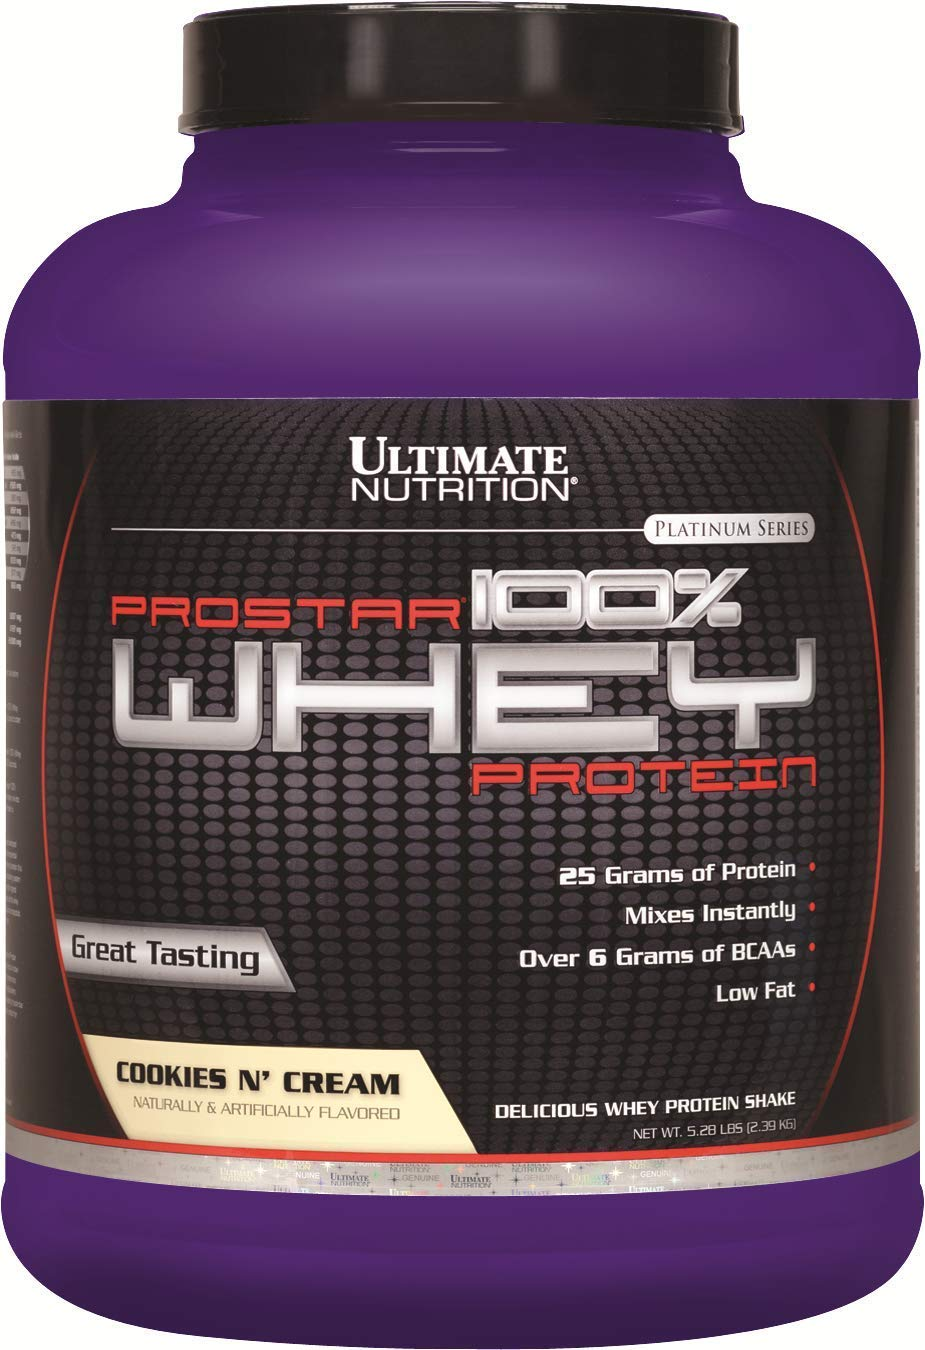 Ultimate Nutrition Prostar Whey Protein Isolate Powde